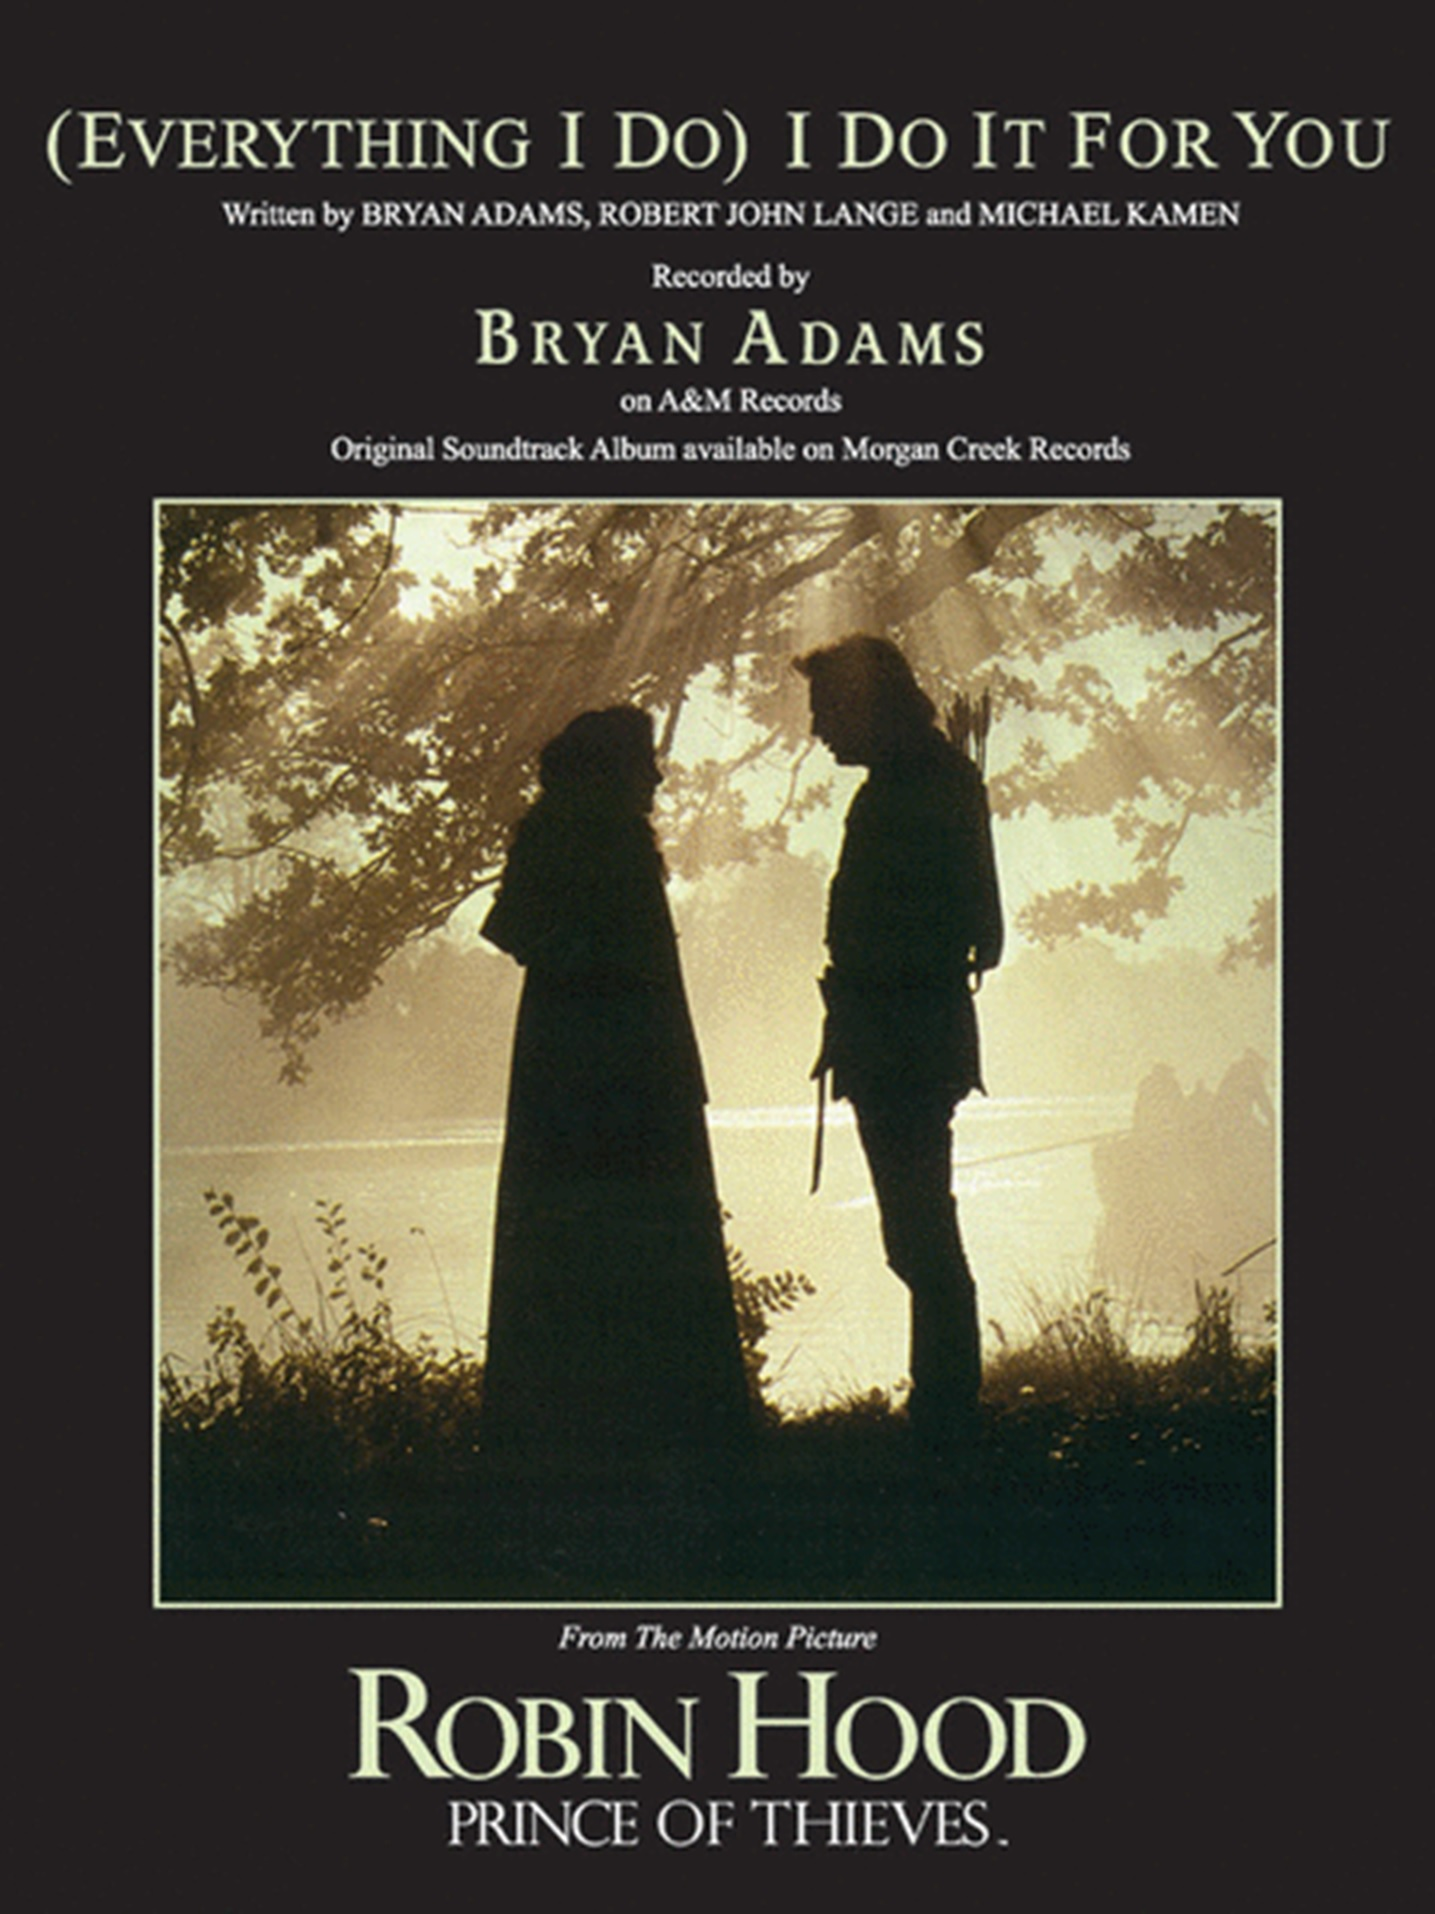 bryan adams albums free download mp3